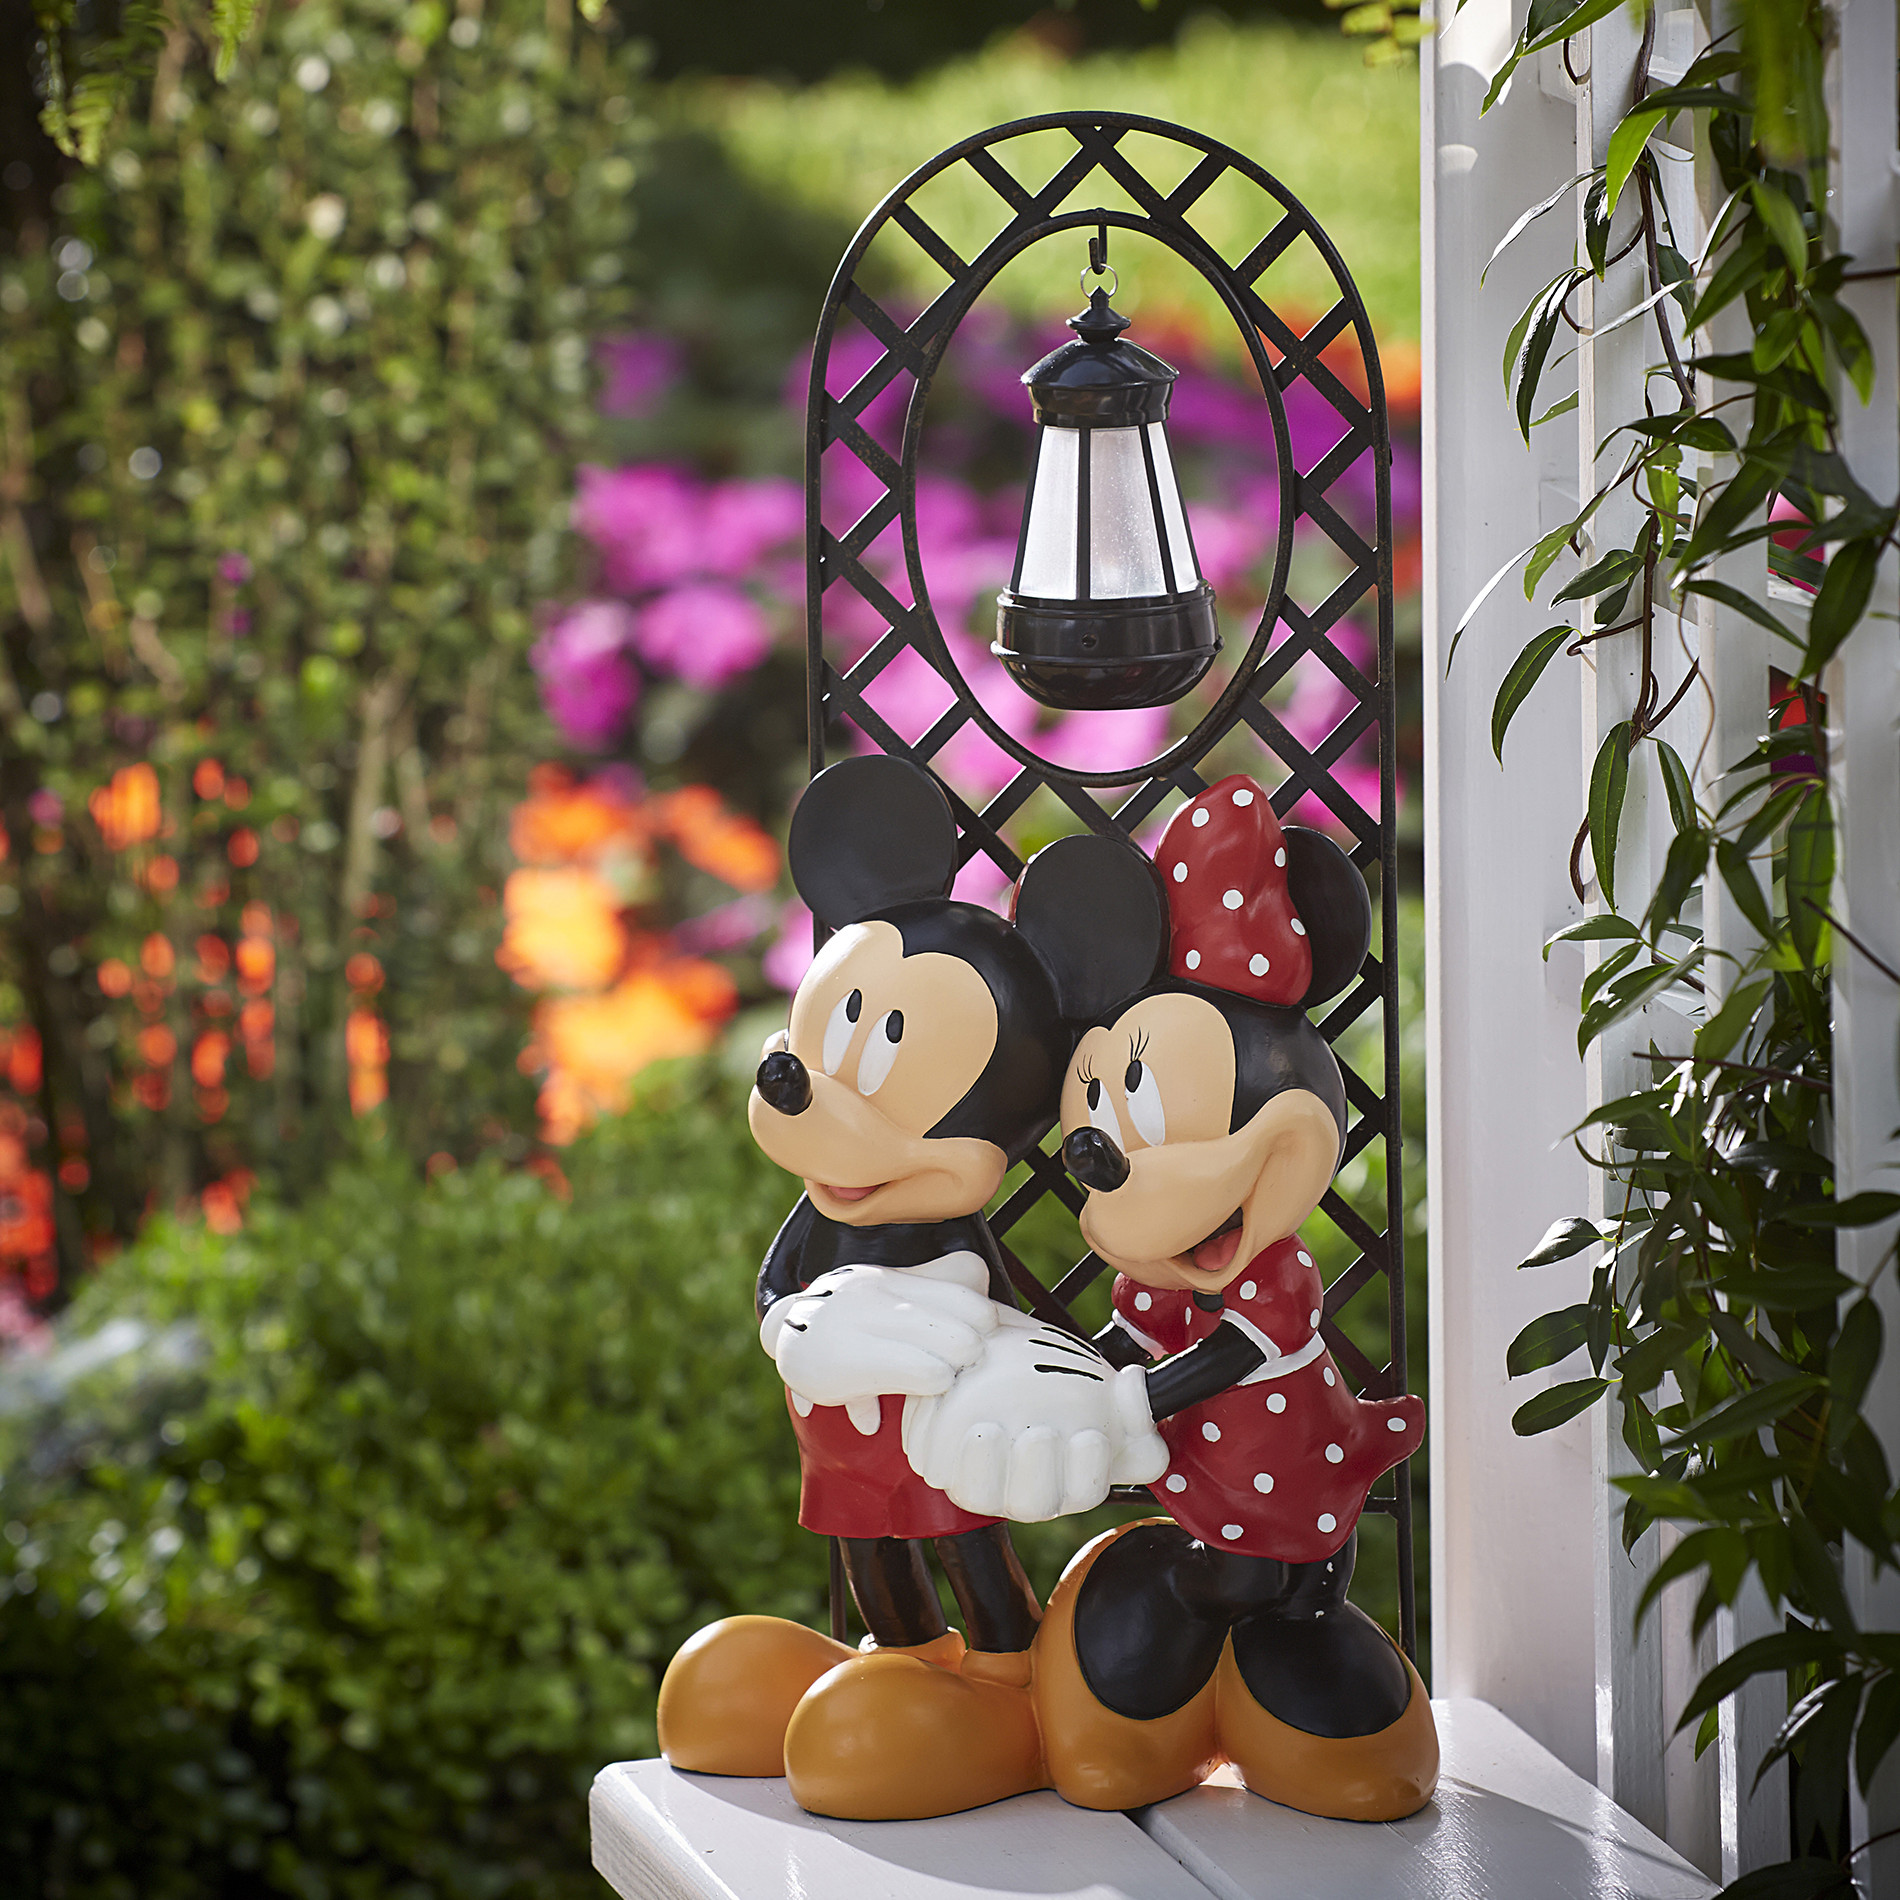 Disney Outdoor Christmas Decorations  Disney Mickey & Minnie with Arched Lattice Panel Limited